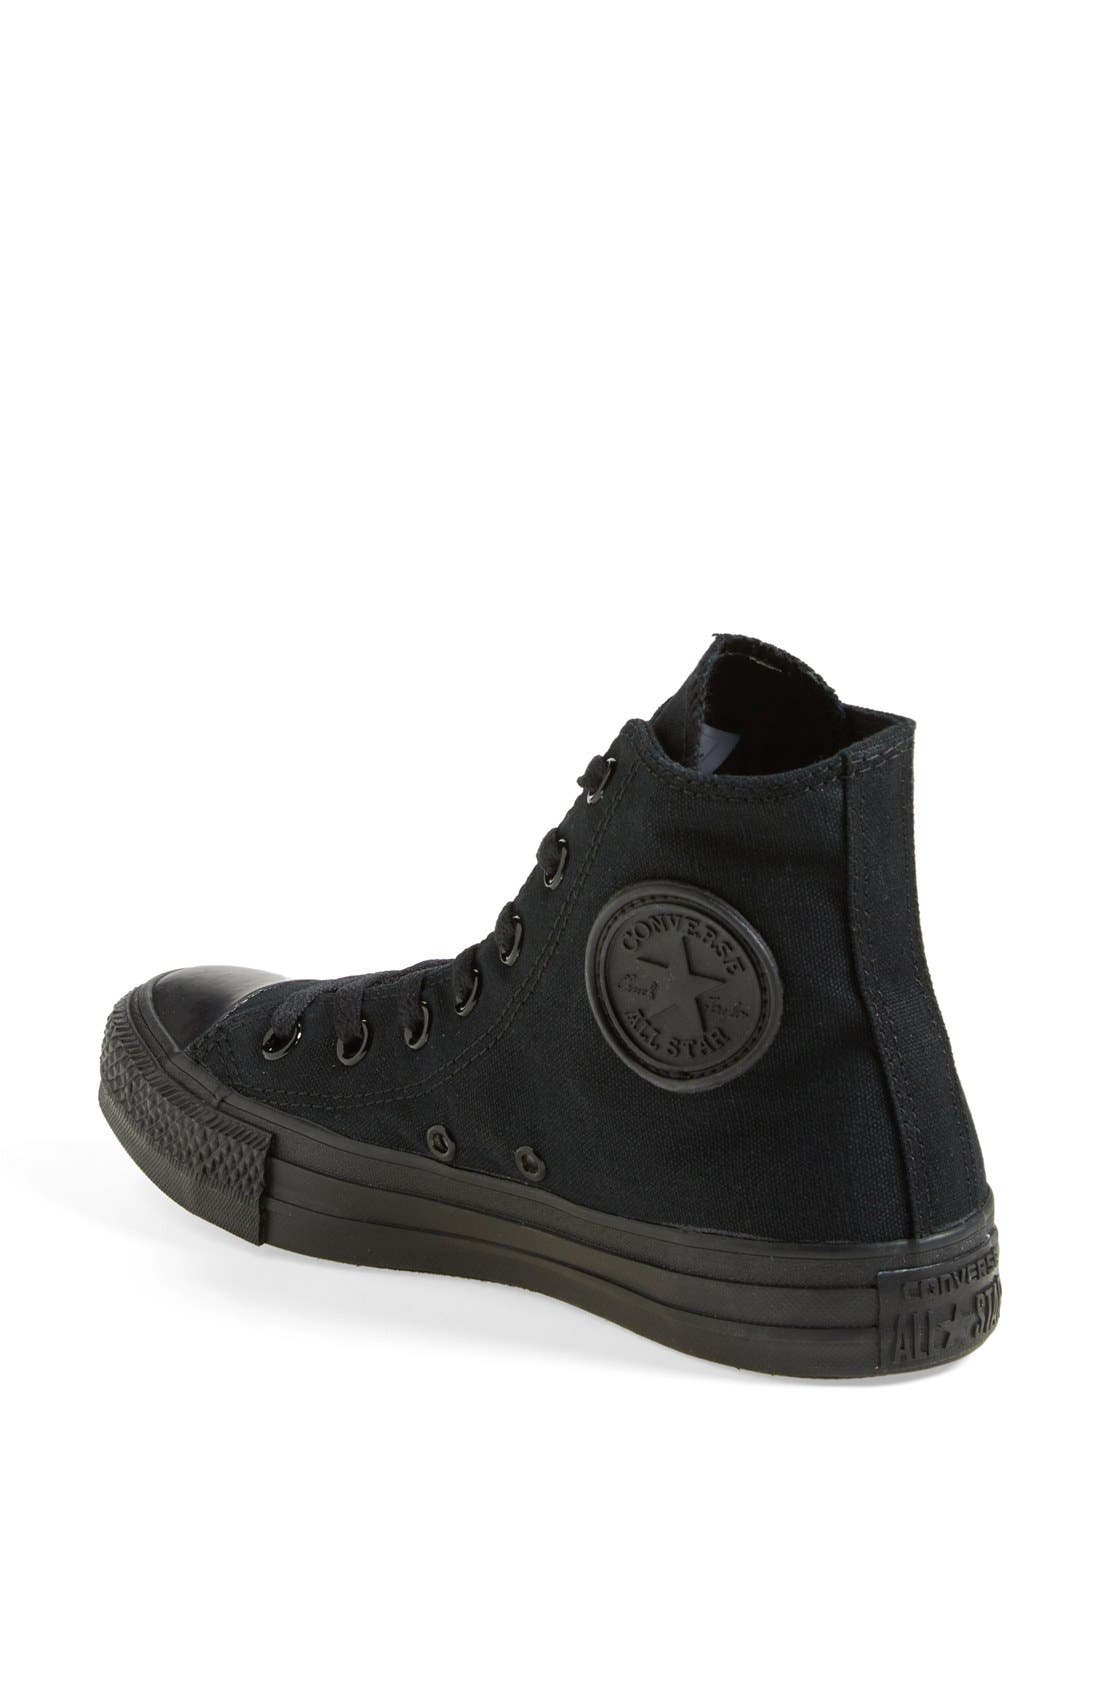 CONVERSE, Chuck Taylor<sup>®</sup> All Star<sup>®</sup> High Top Sneaker, Alternate thumbnail 2, color, 006